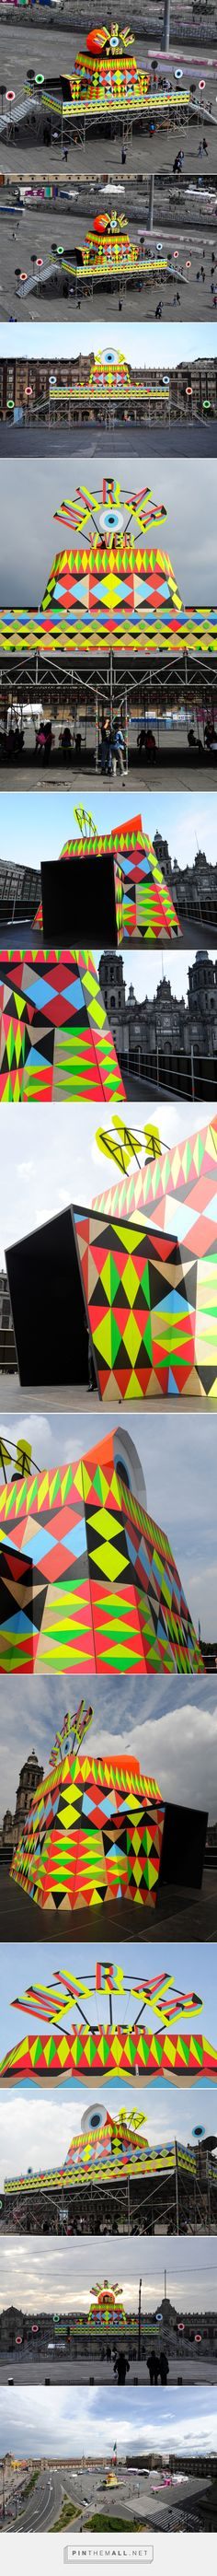 morag myerscough & luke morgan add immersive camera obscura to mexico city square - created via https://pinthemall.net